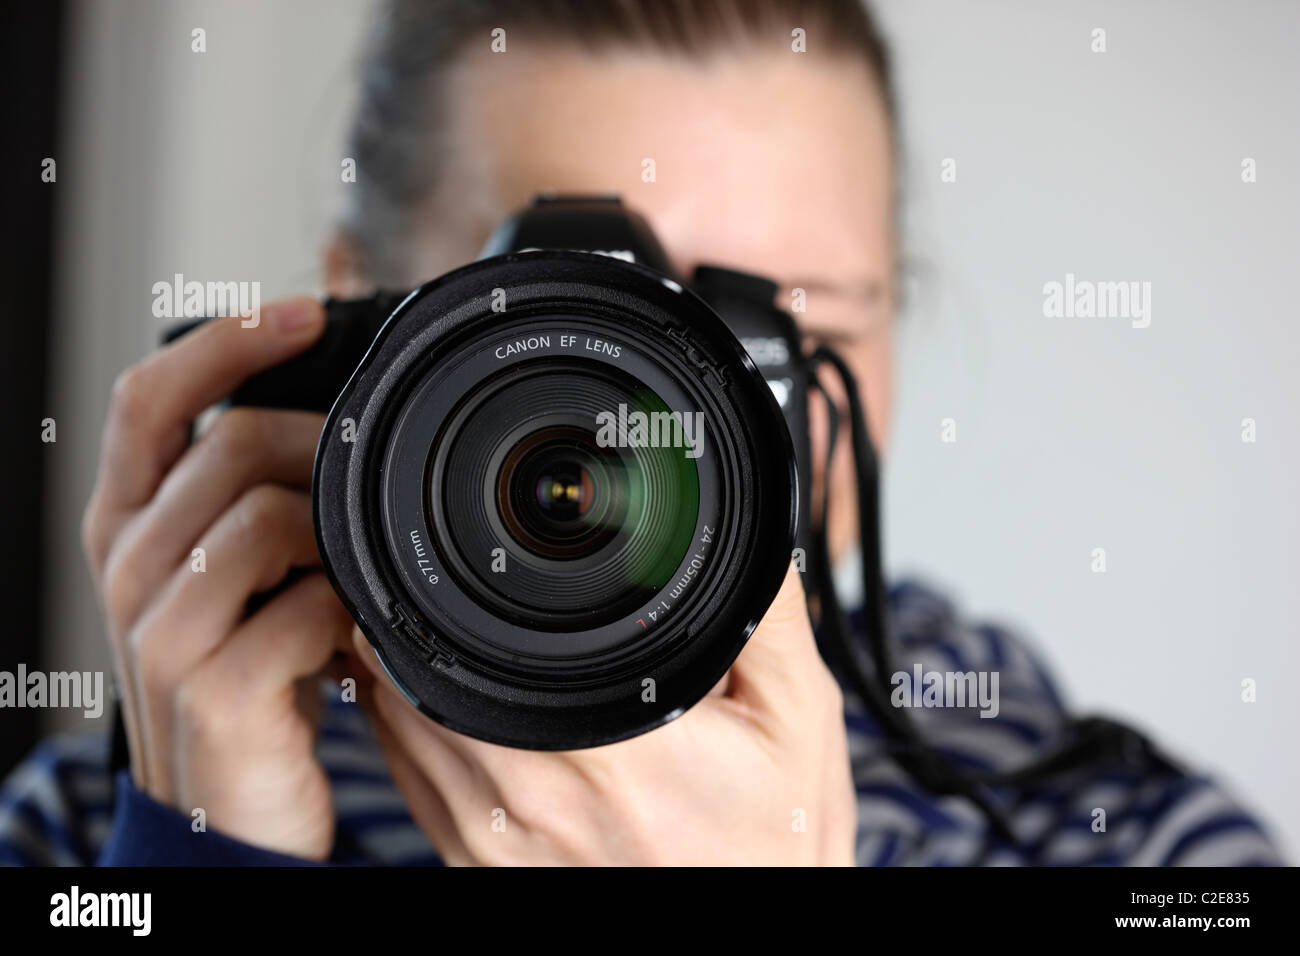 Person, female, looks through the viewfinder of a digital single lens reflex camera. - Stock Image